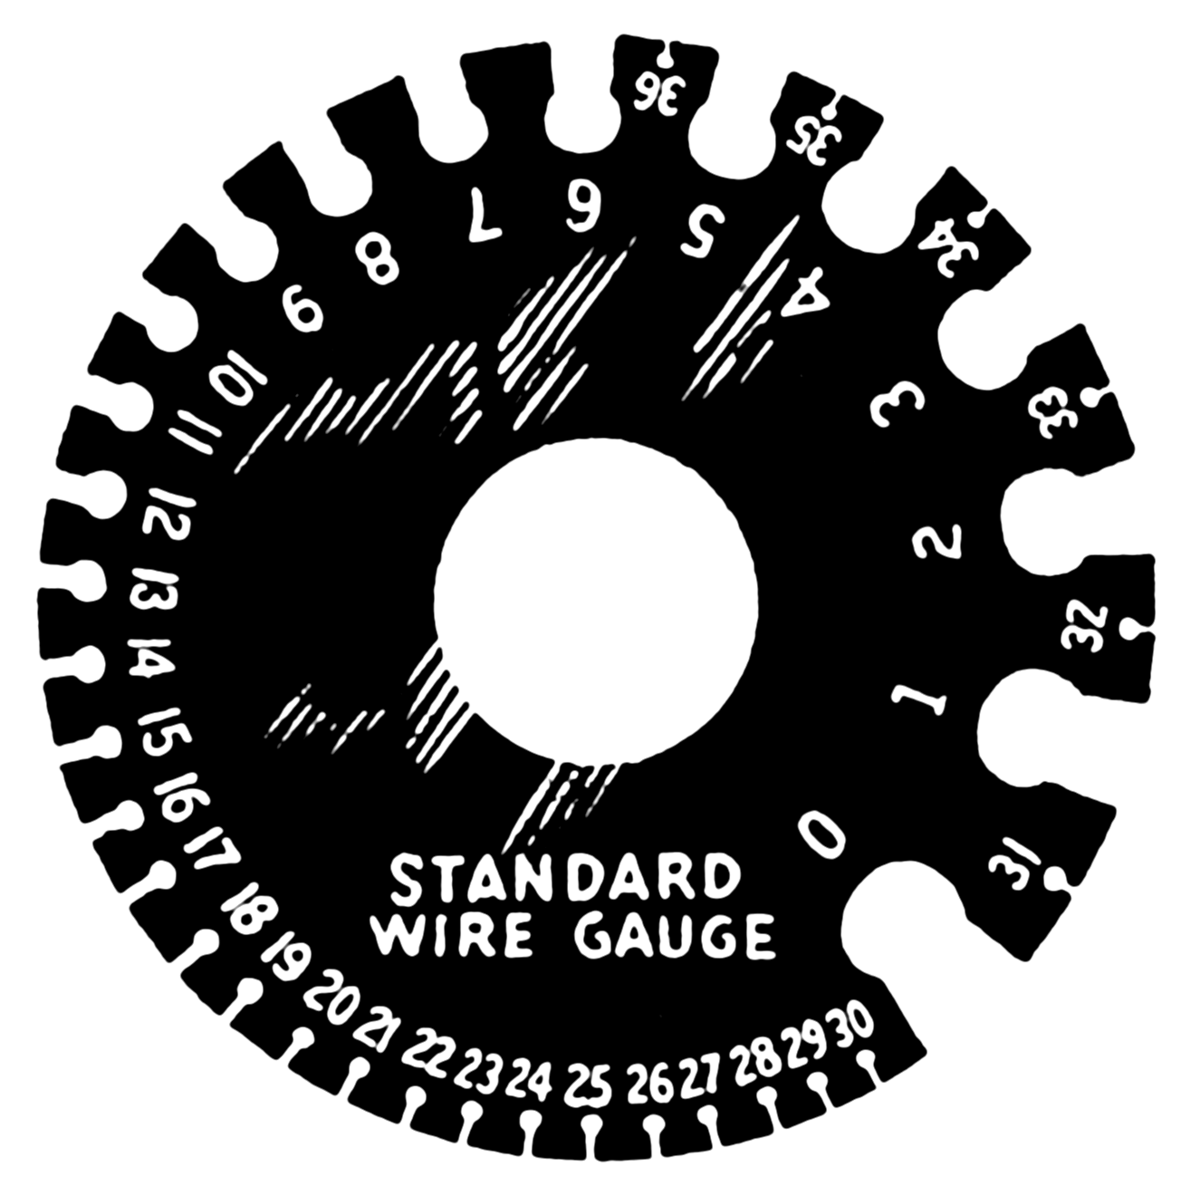 Standard wire gauge wikipedia keyboard keysfo